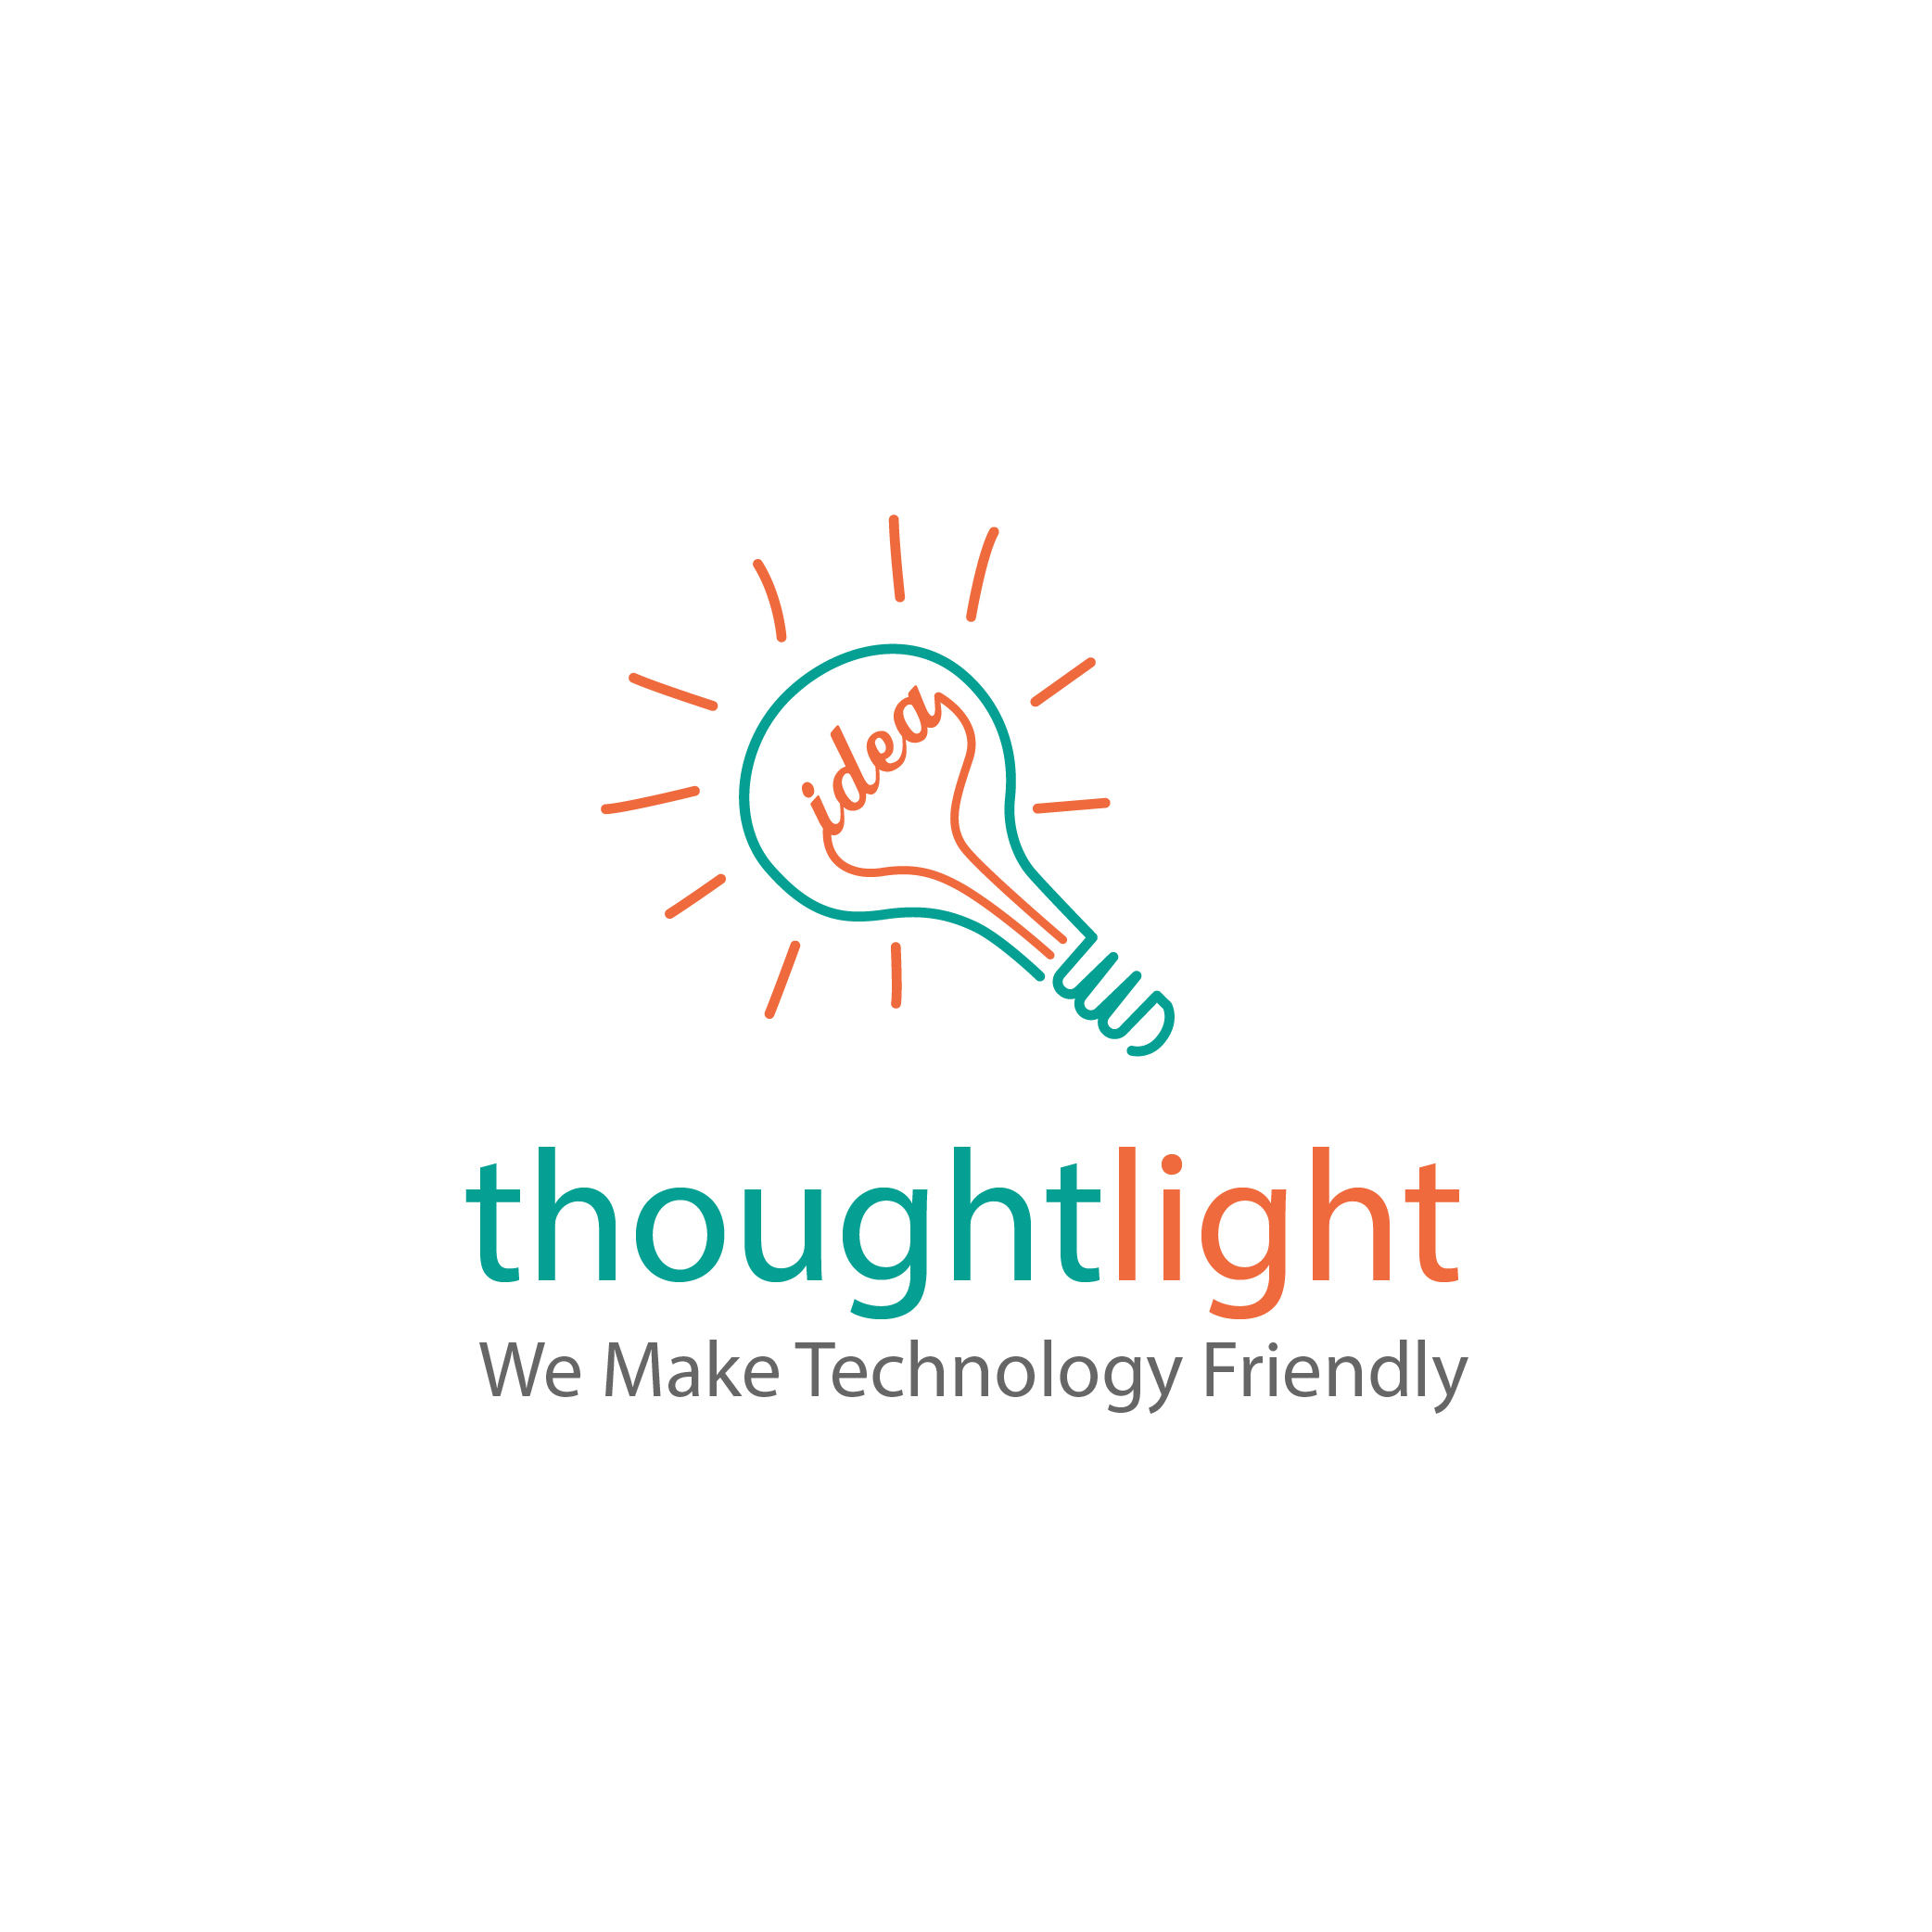 ThoughtlightLogo (1).jpg